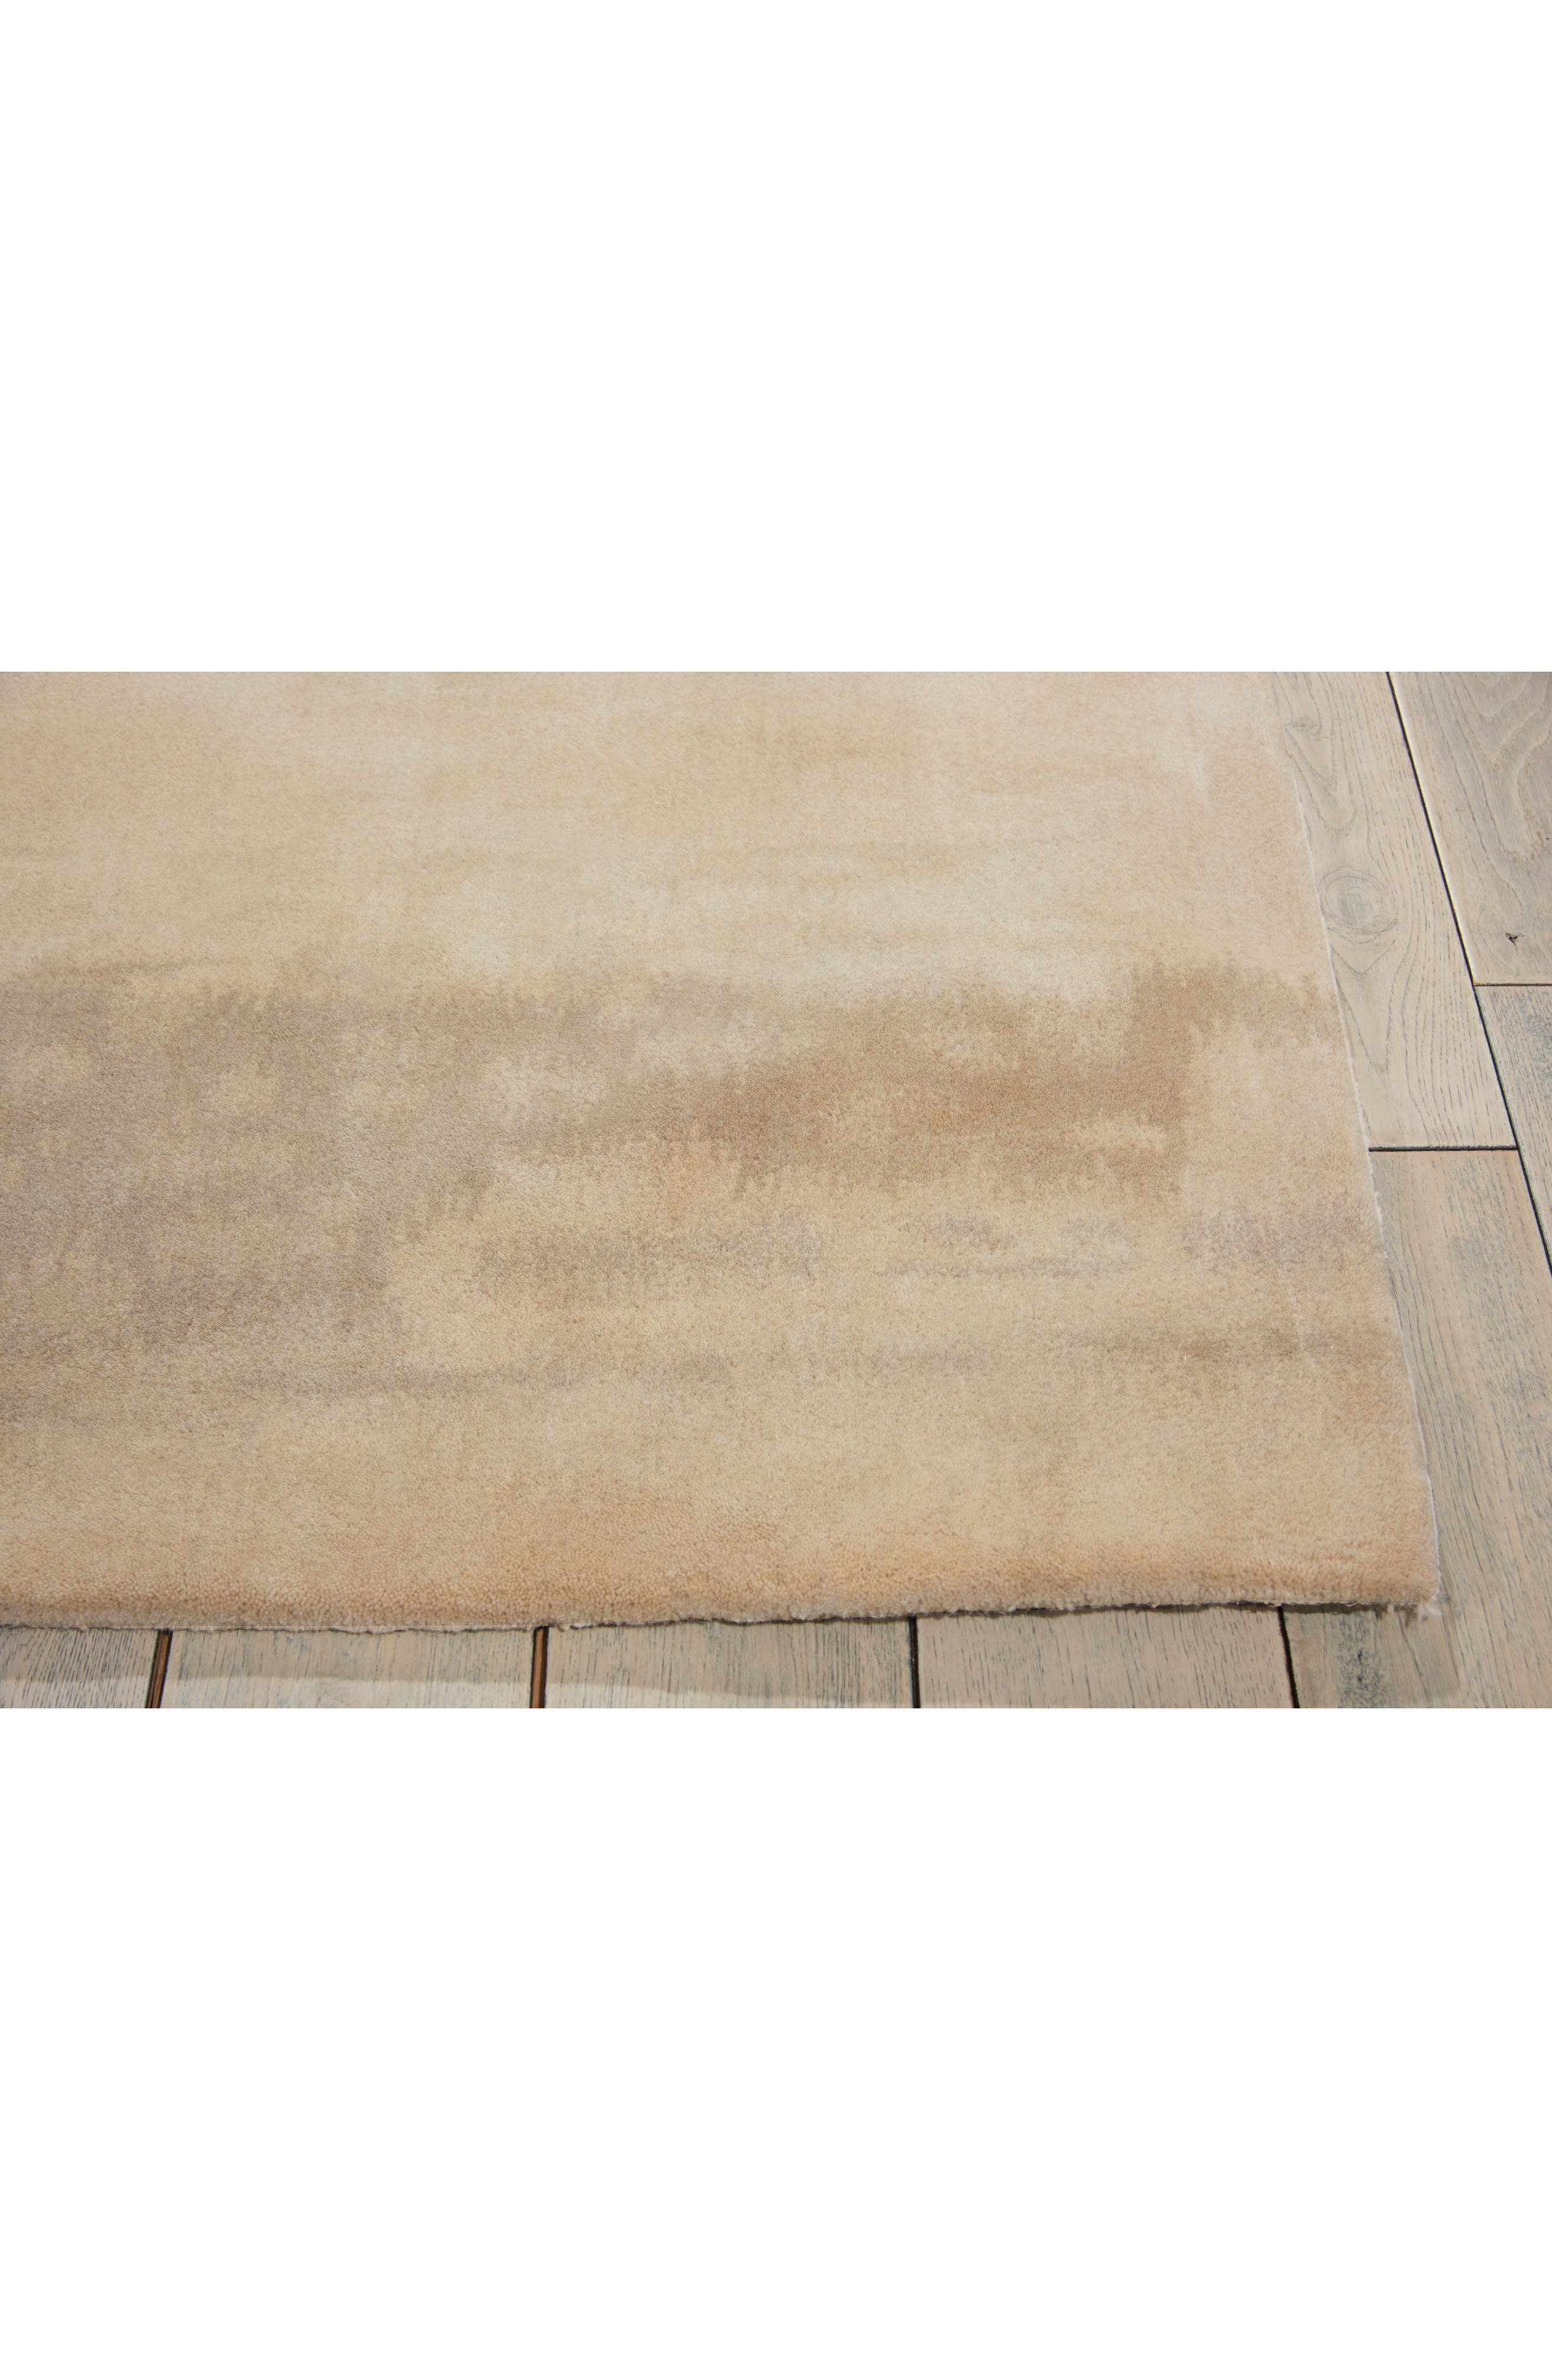 Luster Wash Wool Area Rug,                             Alternate thumbnail 9, color,